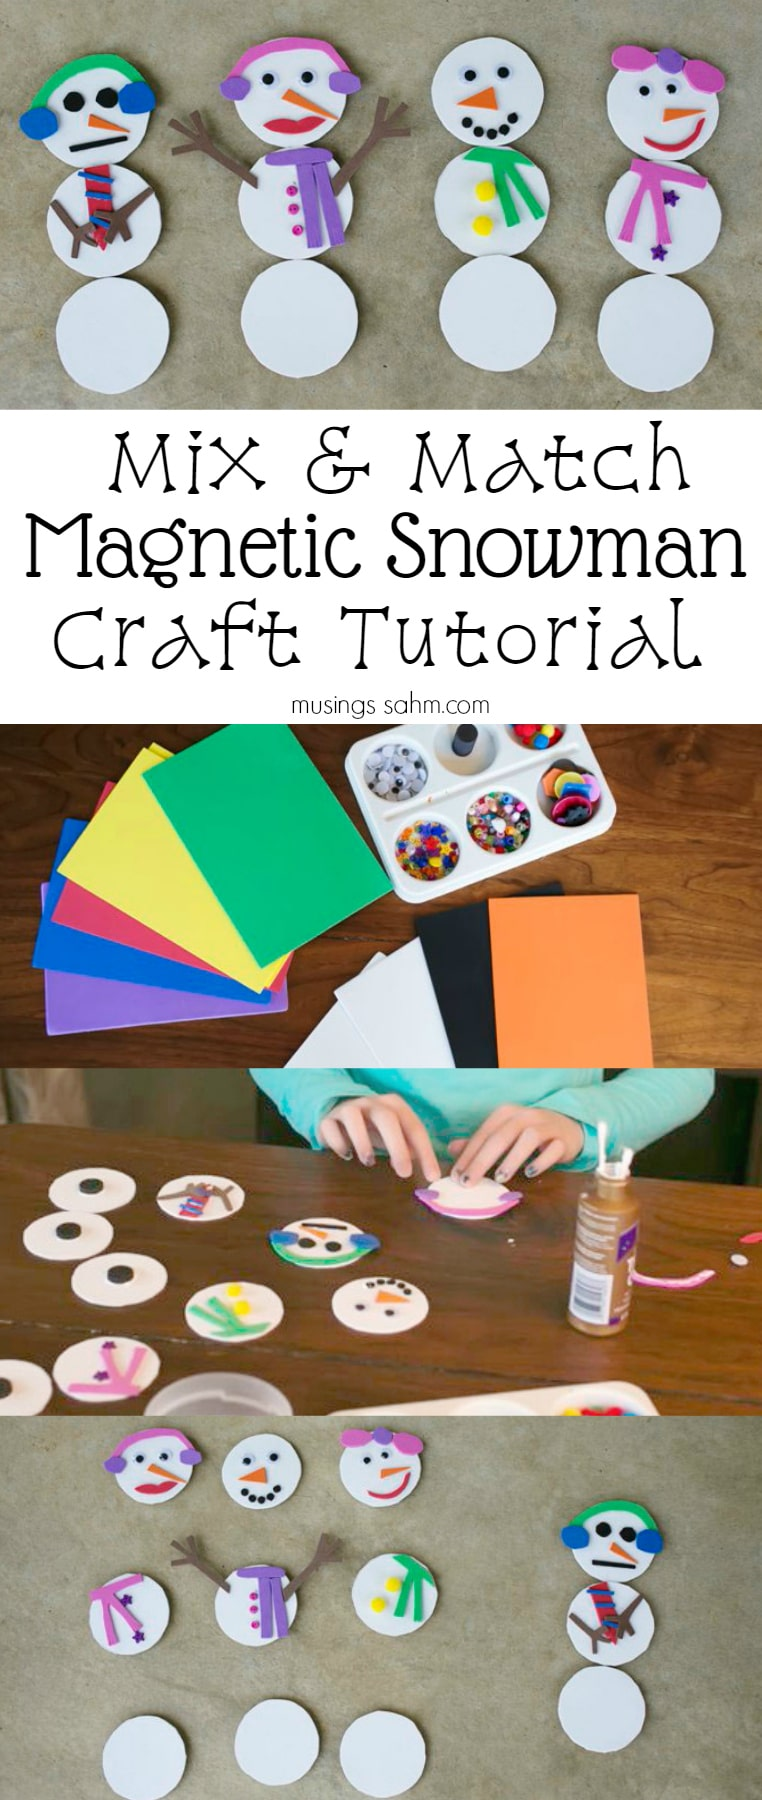 Mix and Match Magnetic Snowman Craft Tutorial